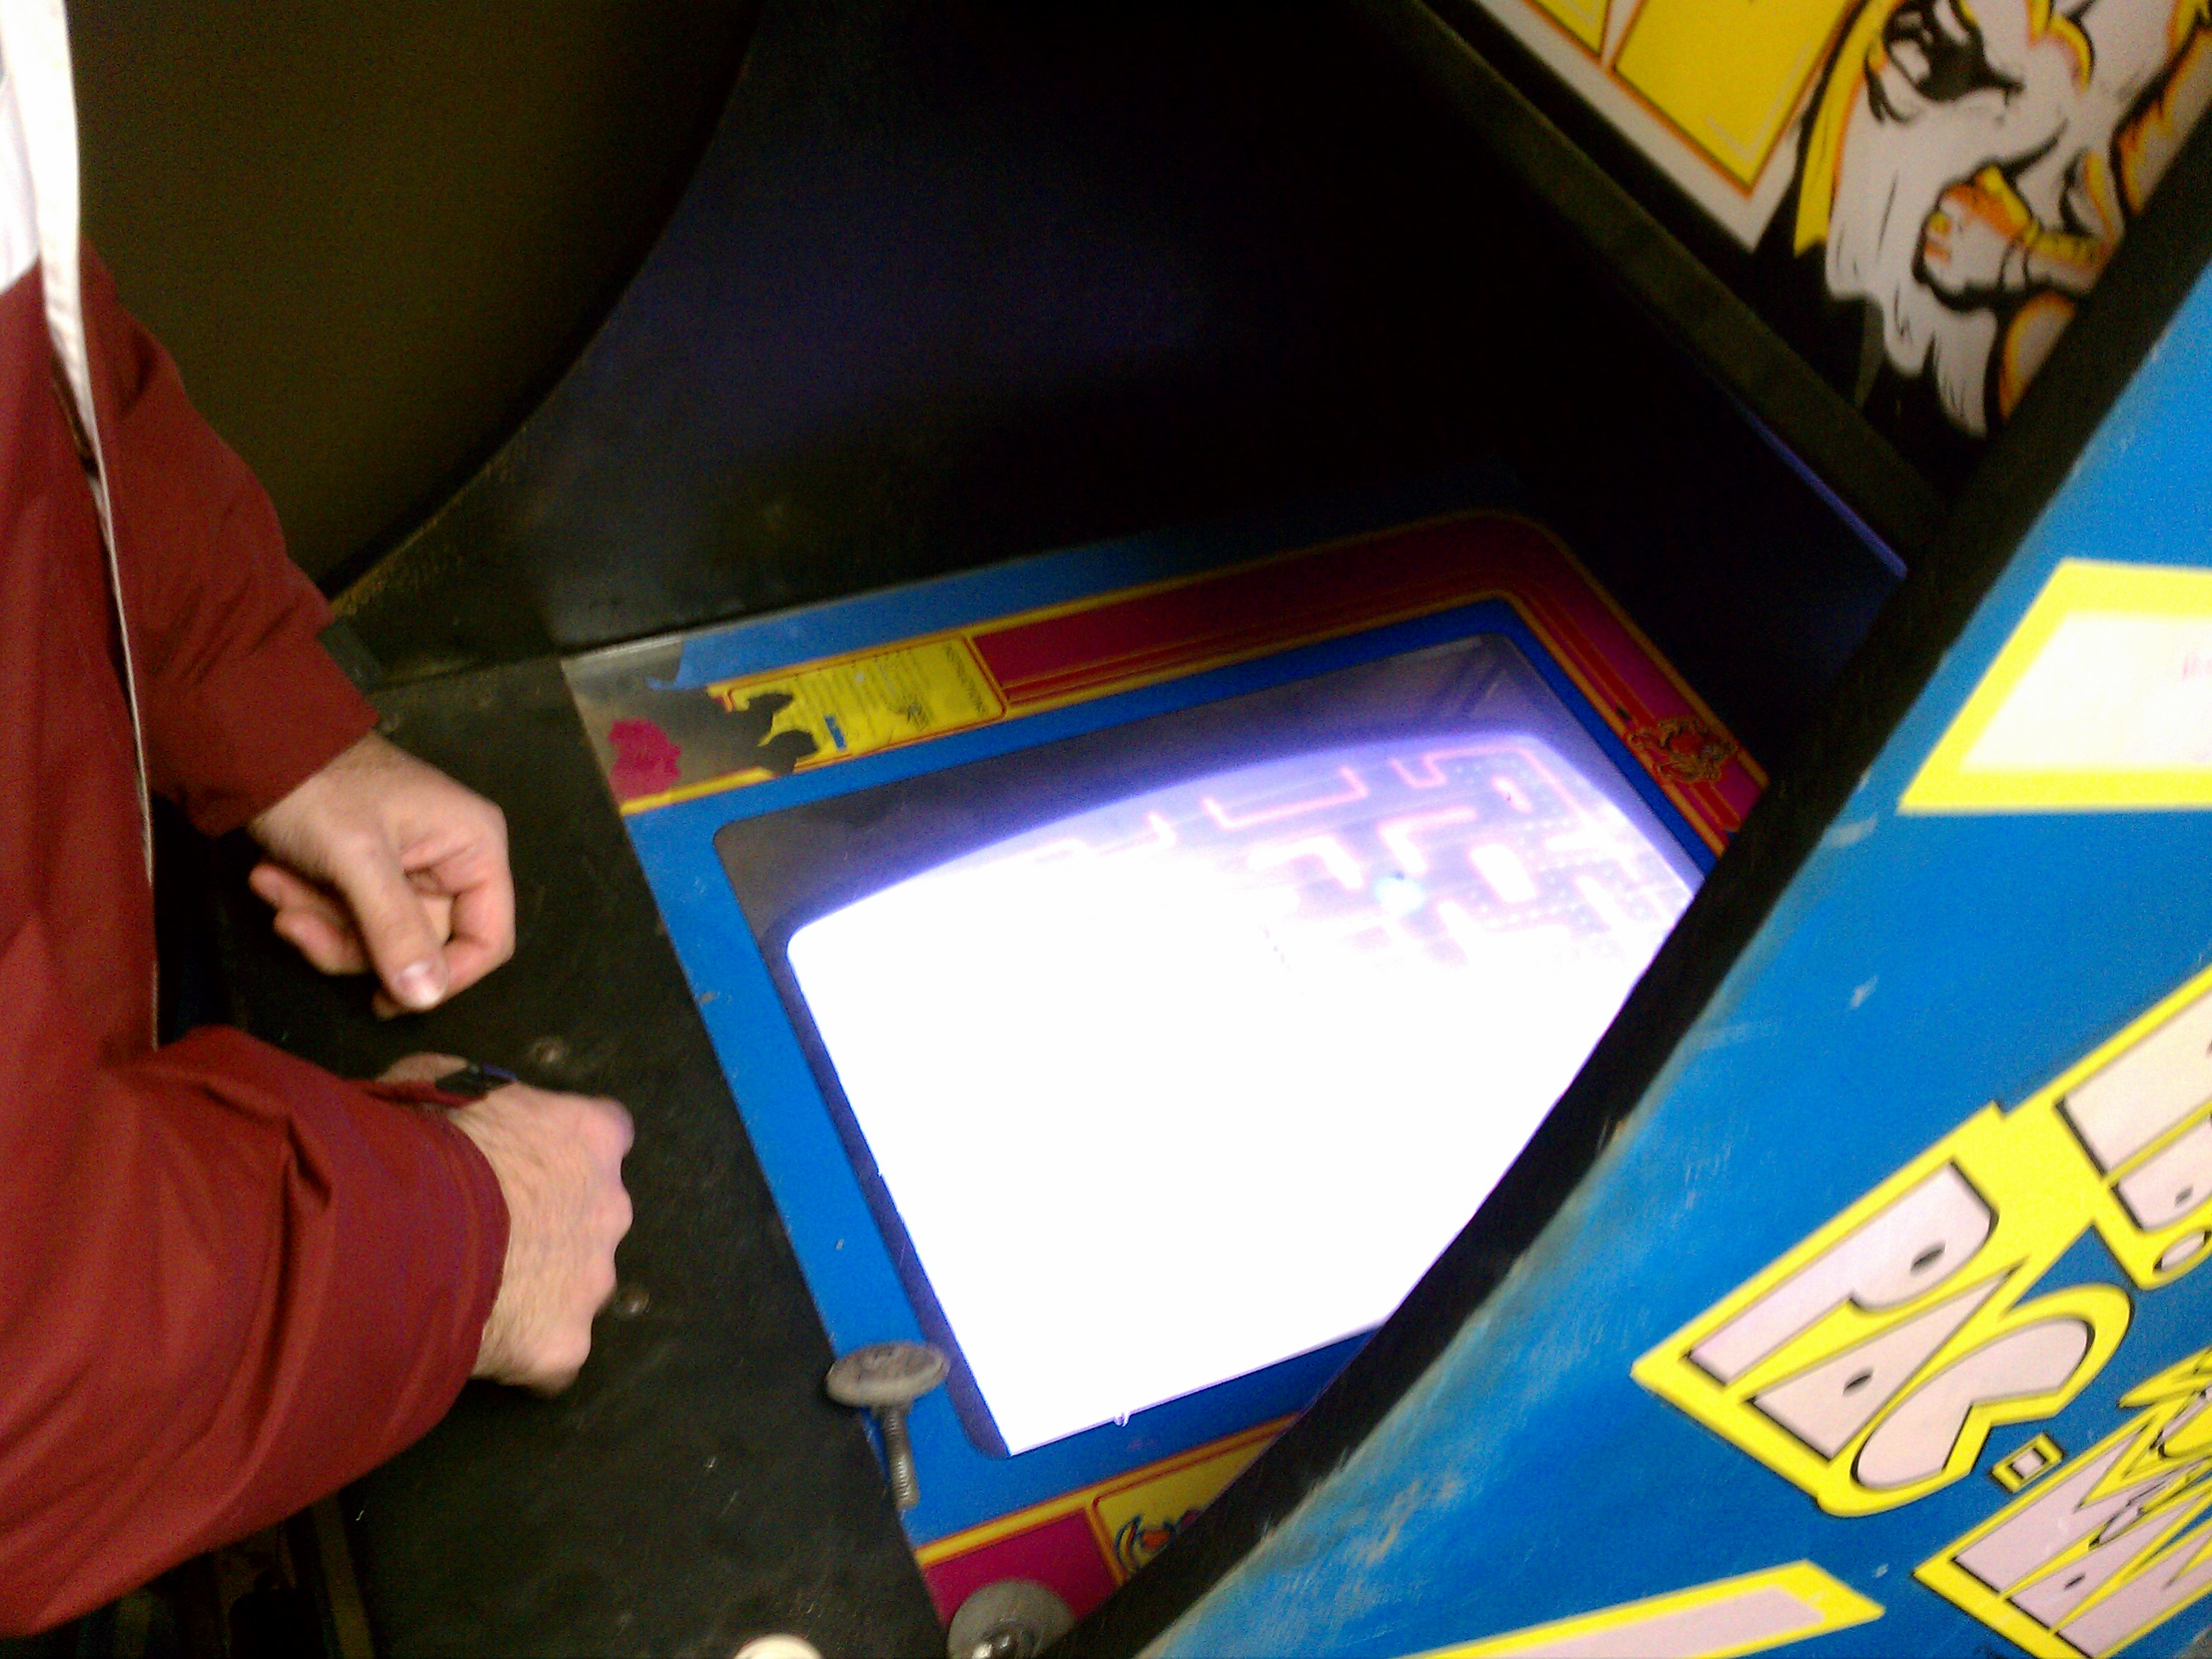 Playing Ms. Pacman